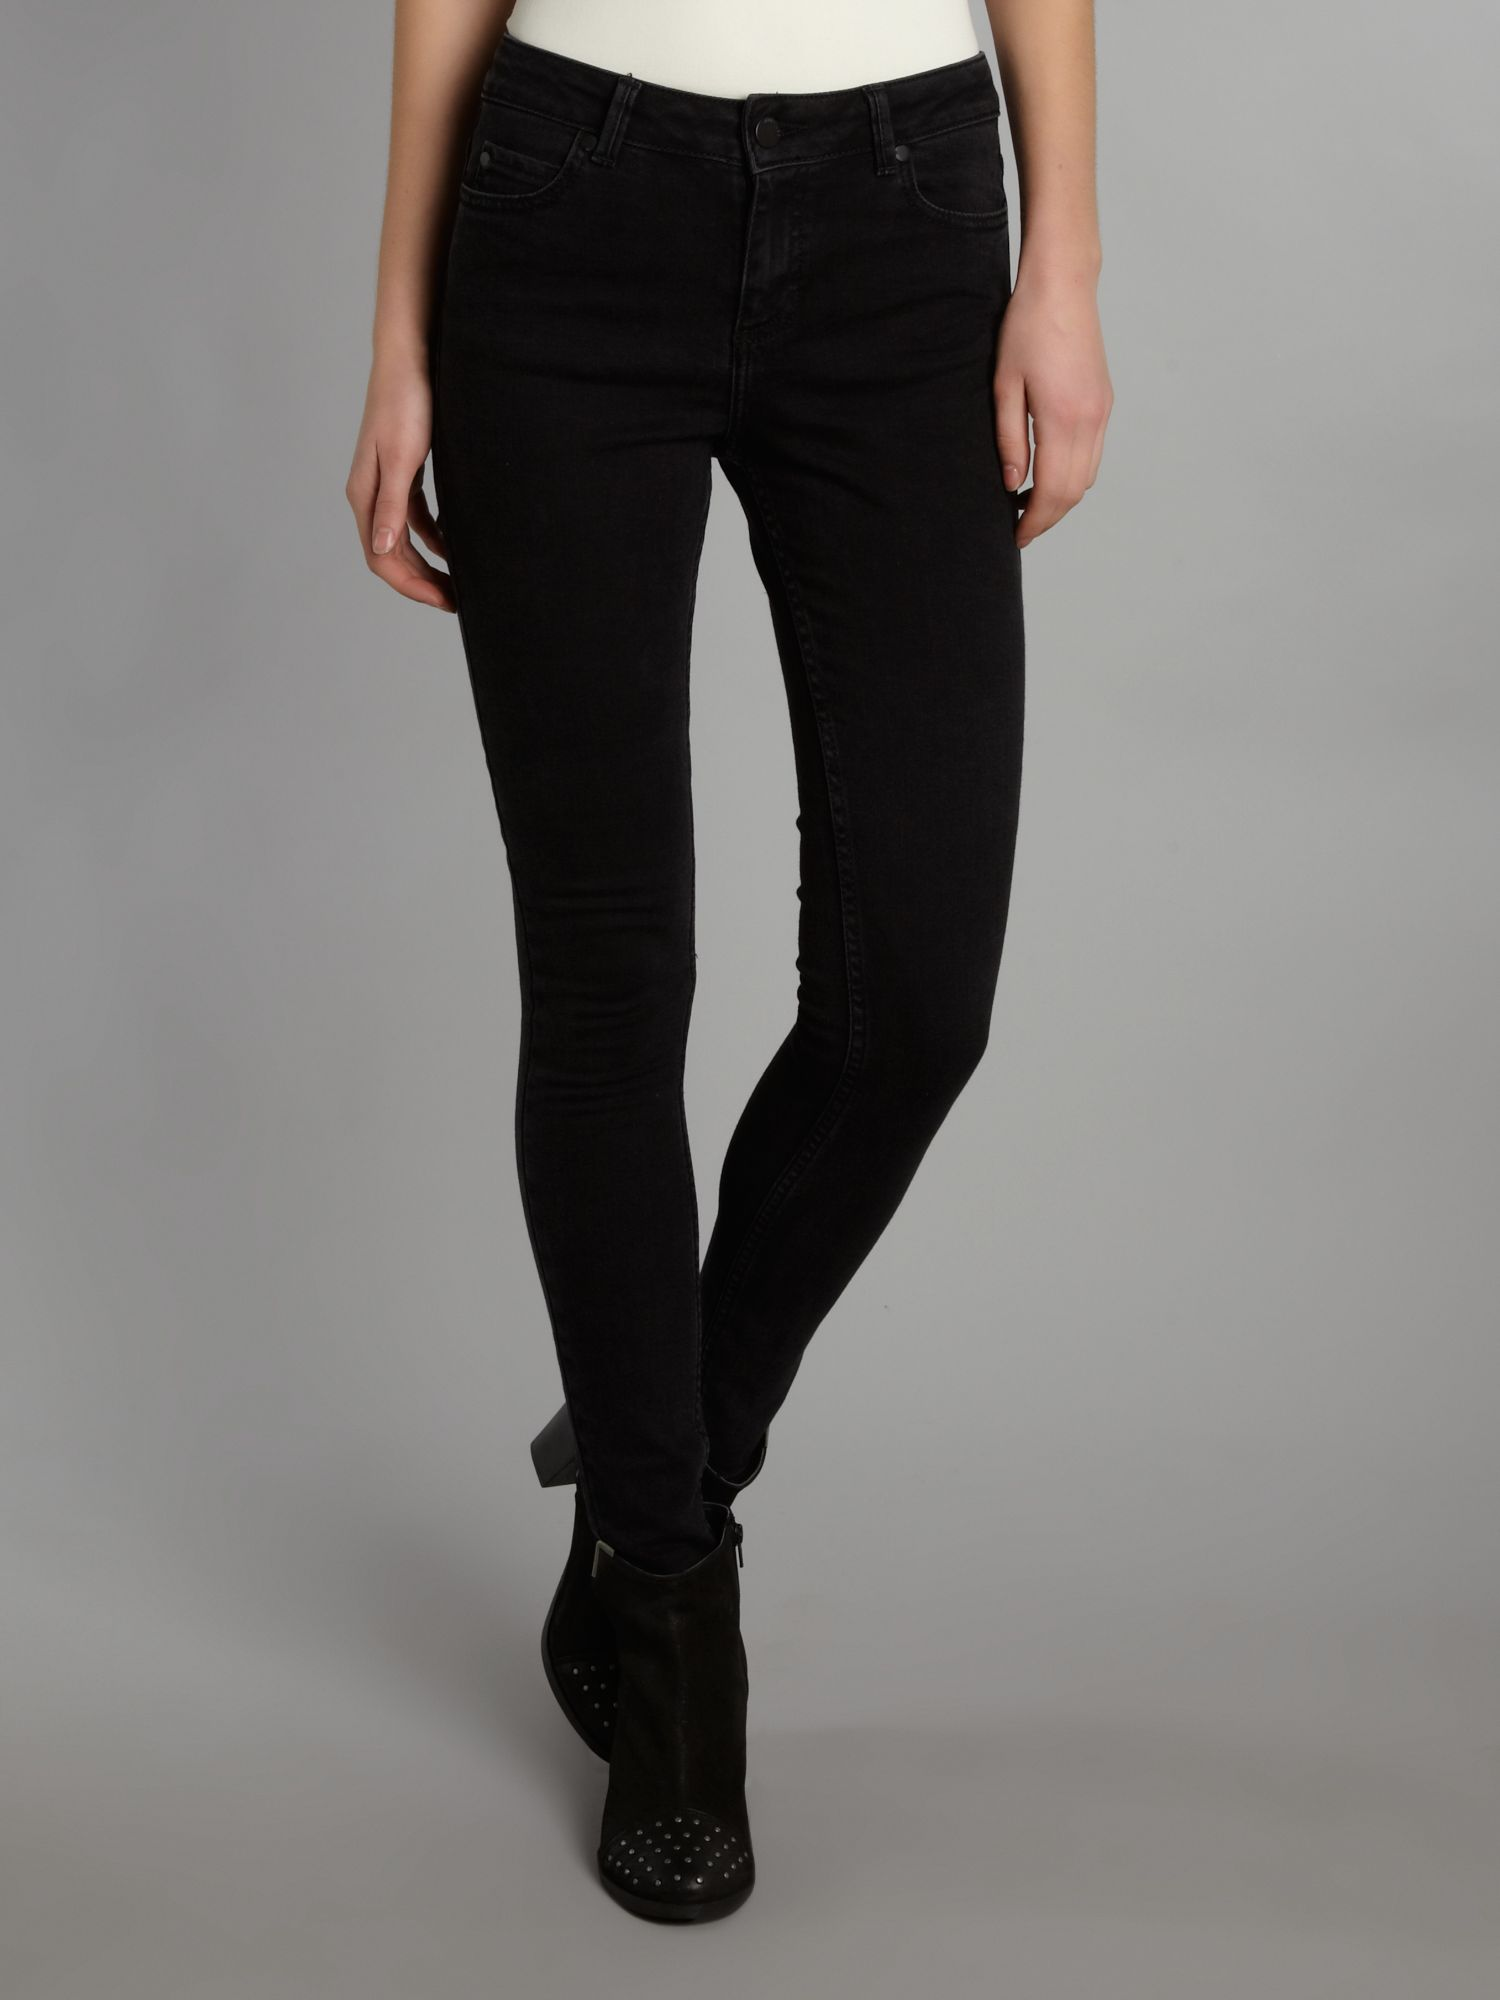 New black skinny